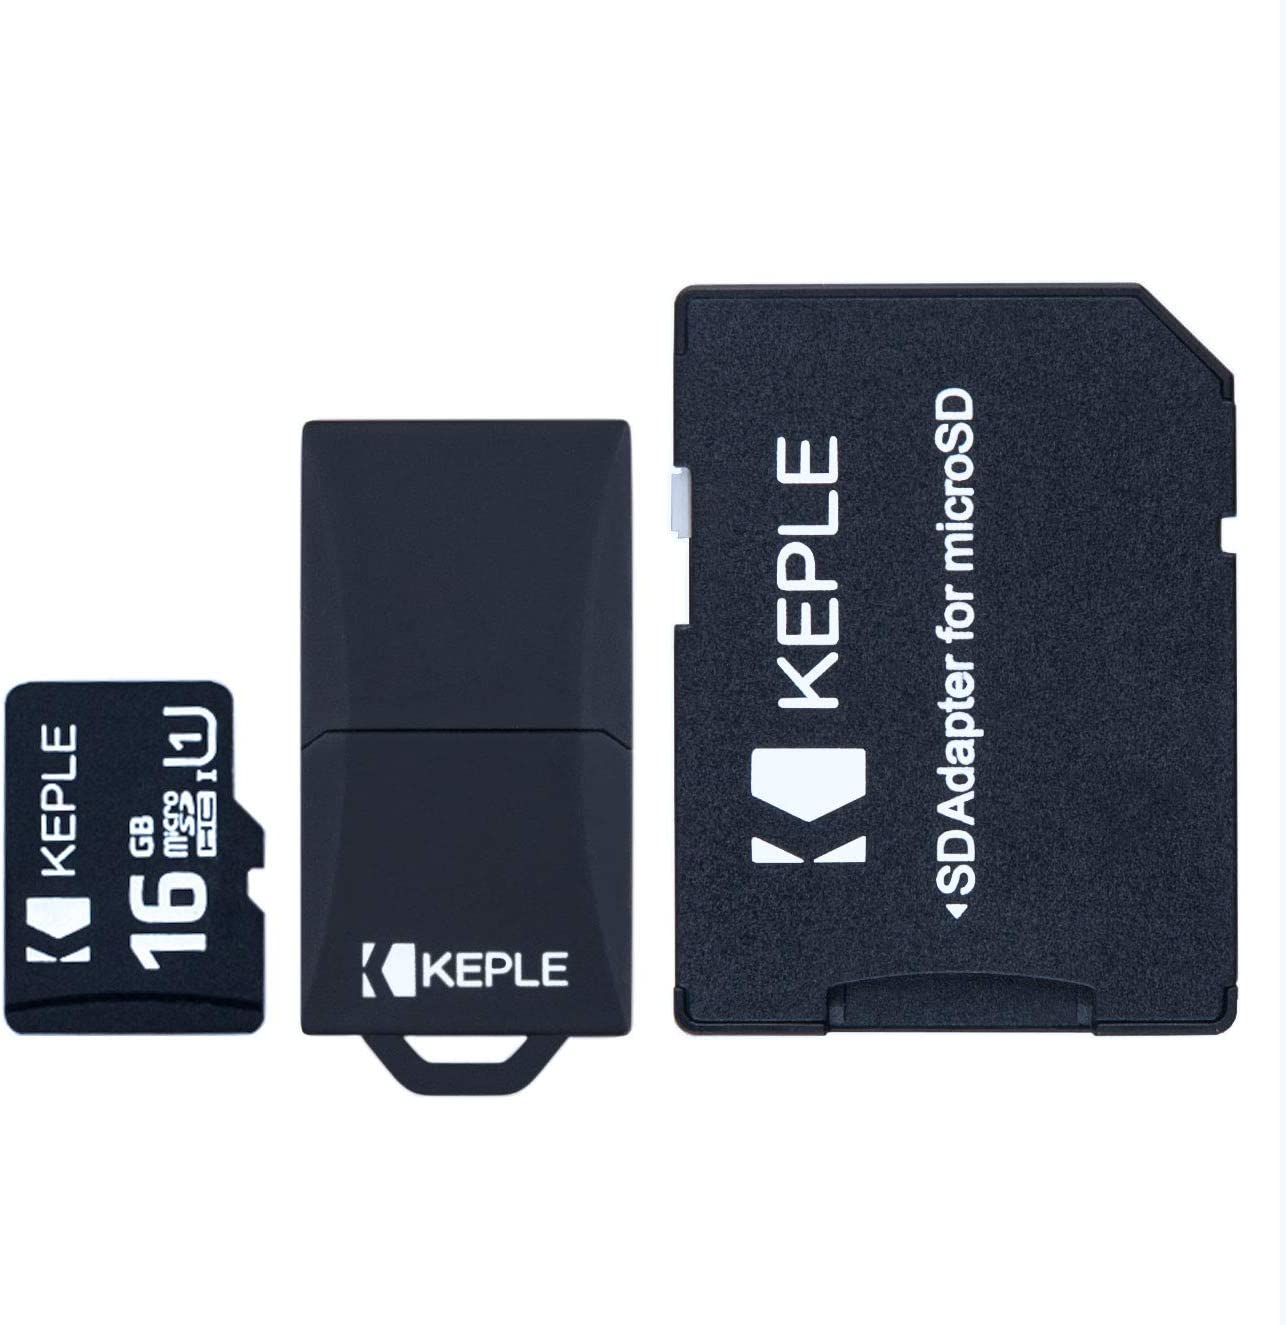 Tarjeta de Memoria Micro SD da 16GB | MicroSD Class 10 Compatible con Akaso Models: Brave 5 4K / Brave 4 4K / V50 Pro / V50 Native / EK7000 Plus / EK7000 / EK5000 Sports Action Camcorder 16 GB